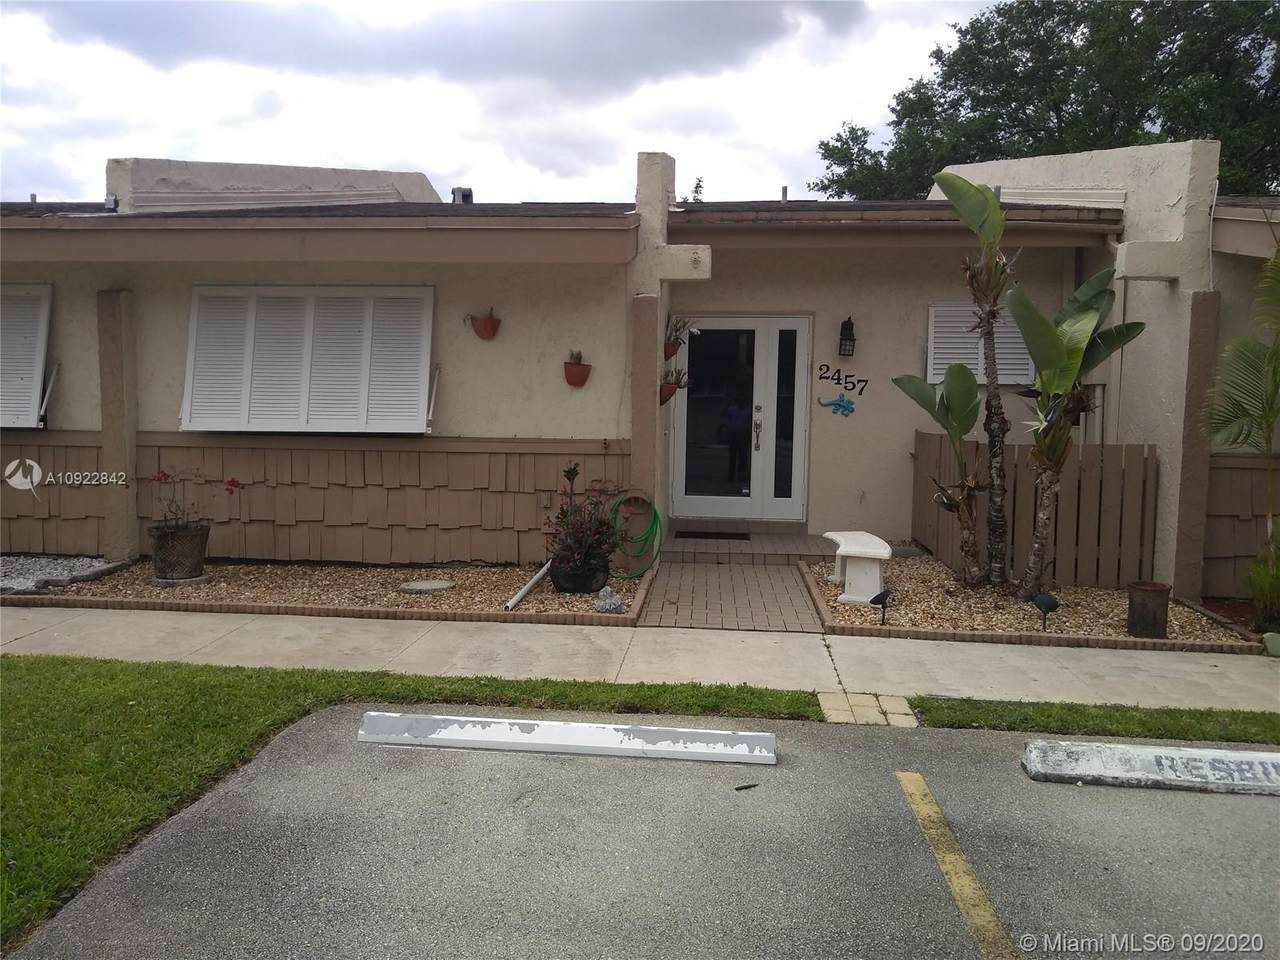 2457 37th Ave - Photo 1